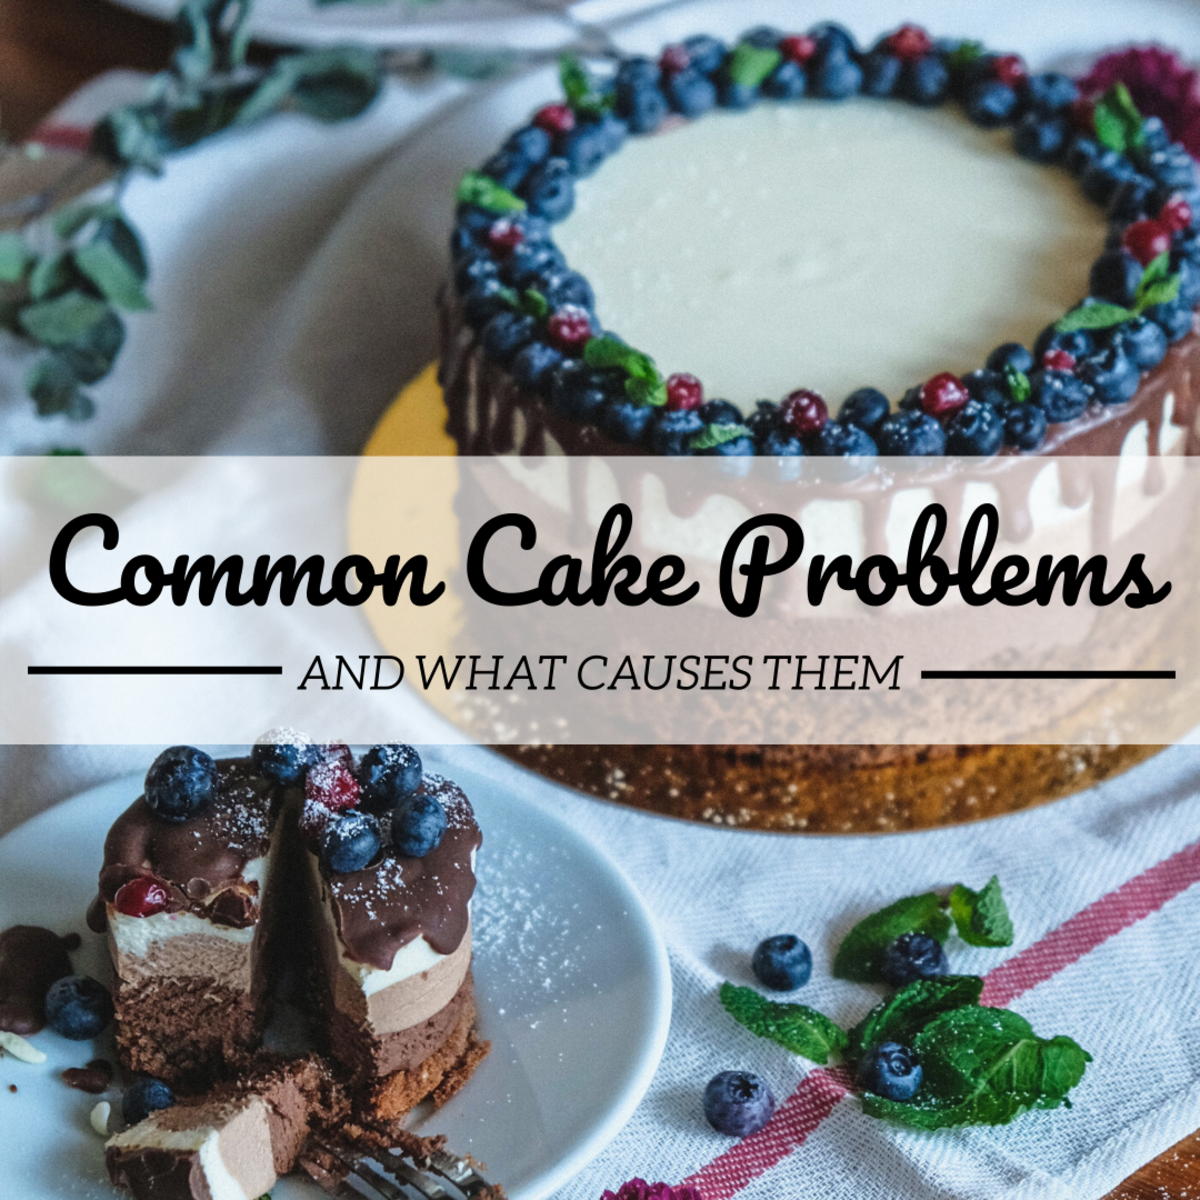 Common Cake Faults: Identifying and Remedying the Problem